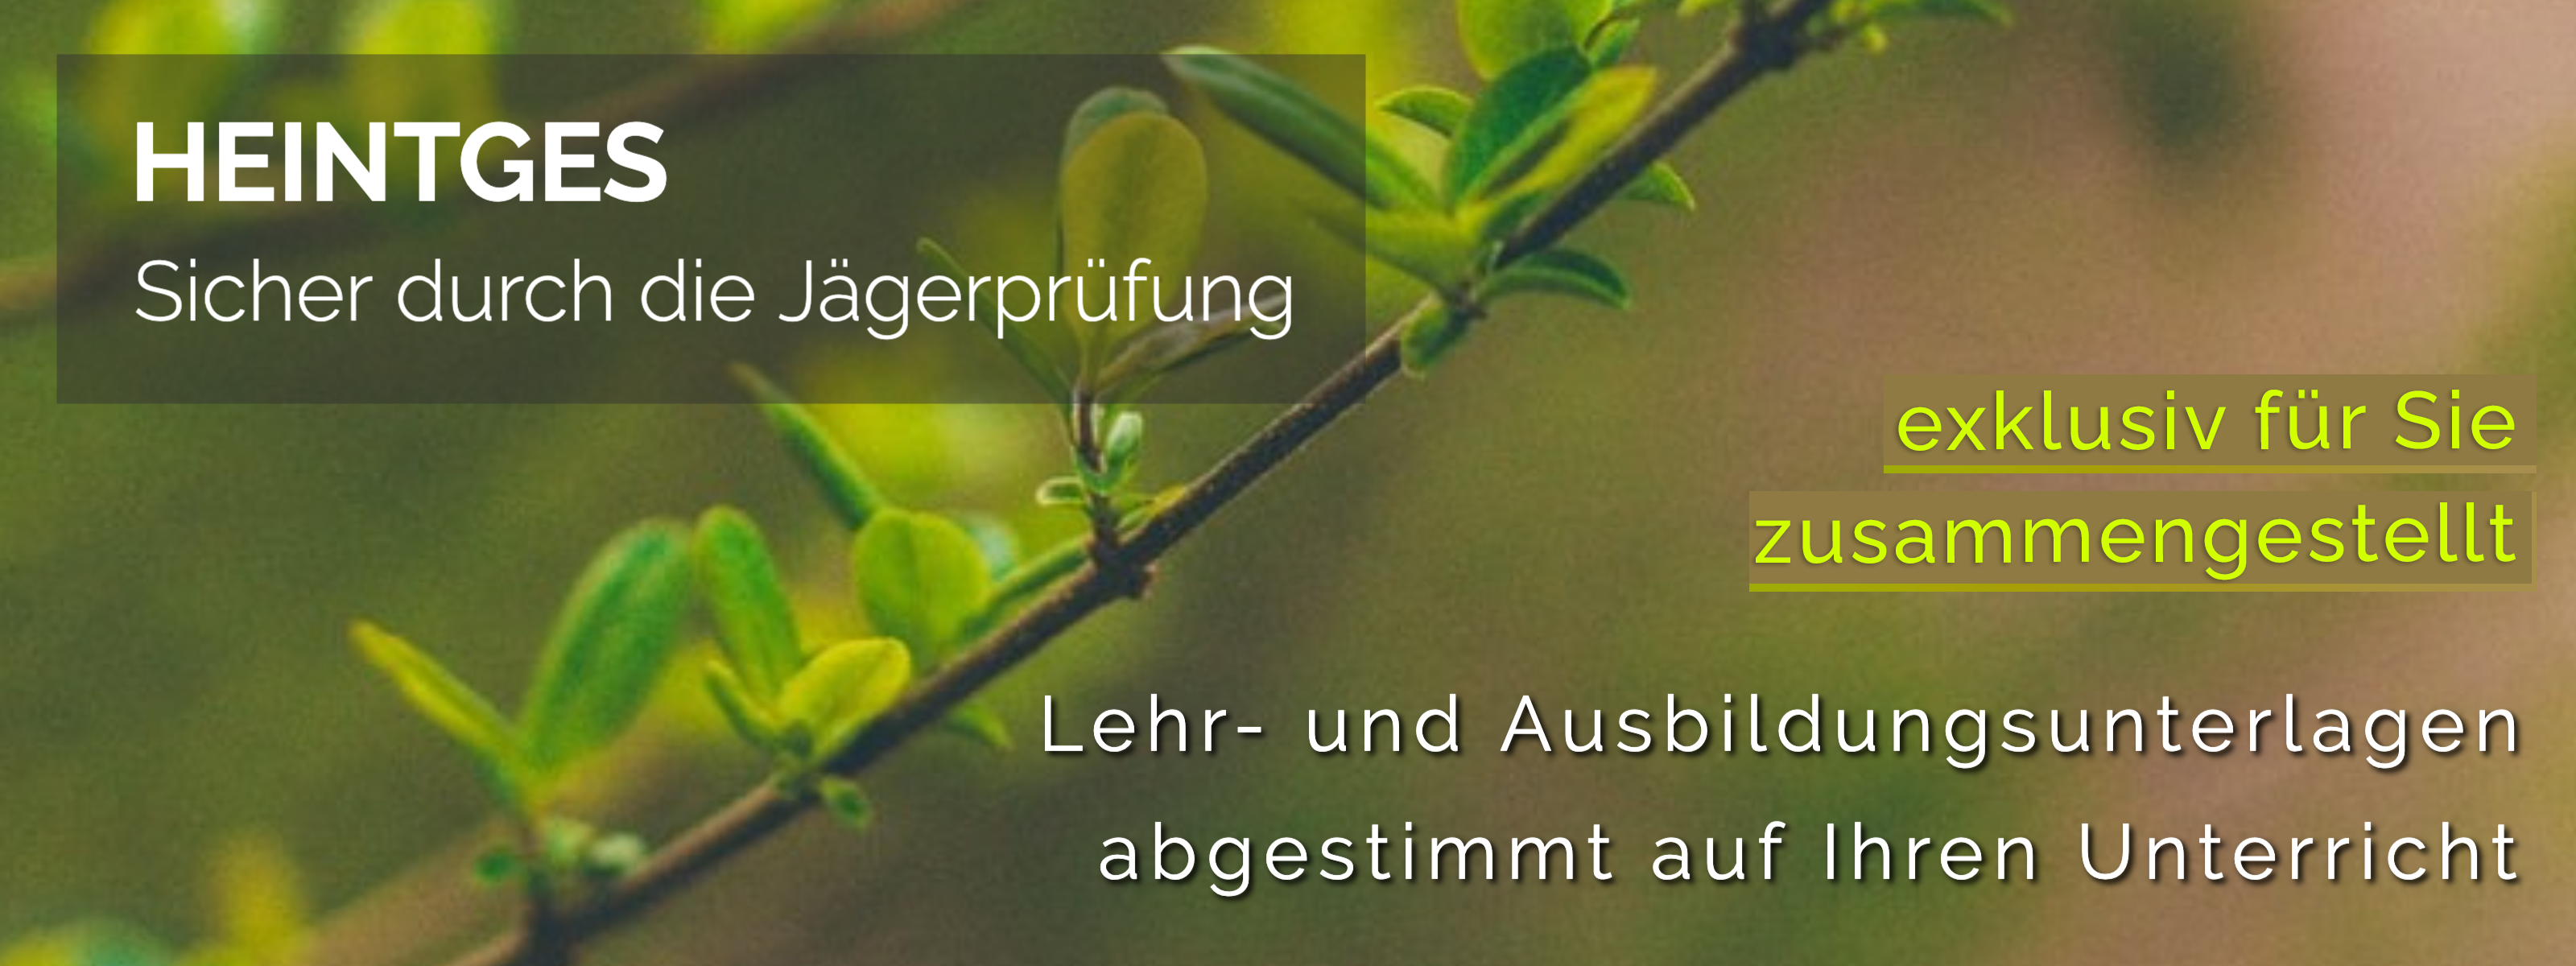 Newsletter-HEADER-Individuell